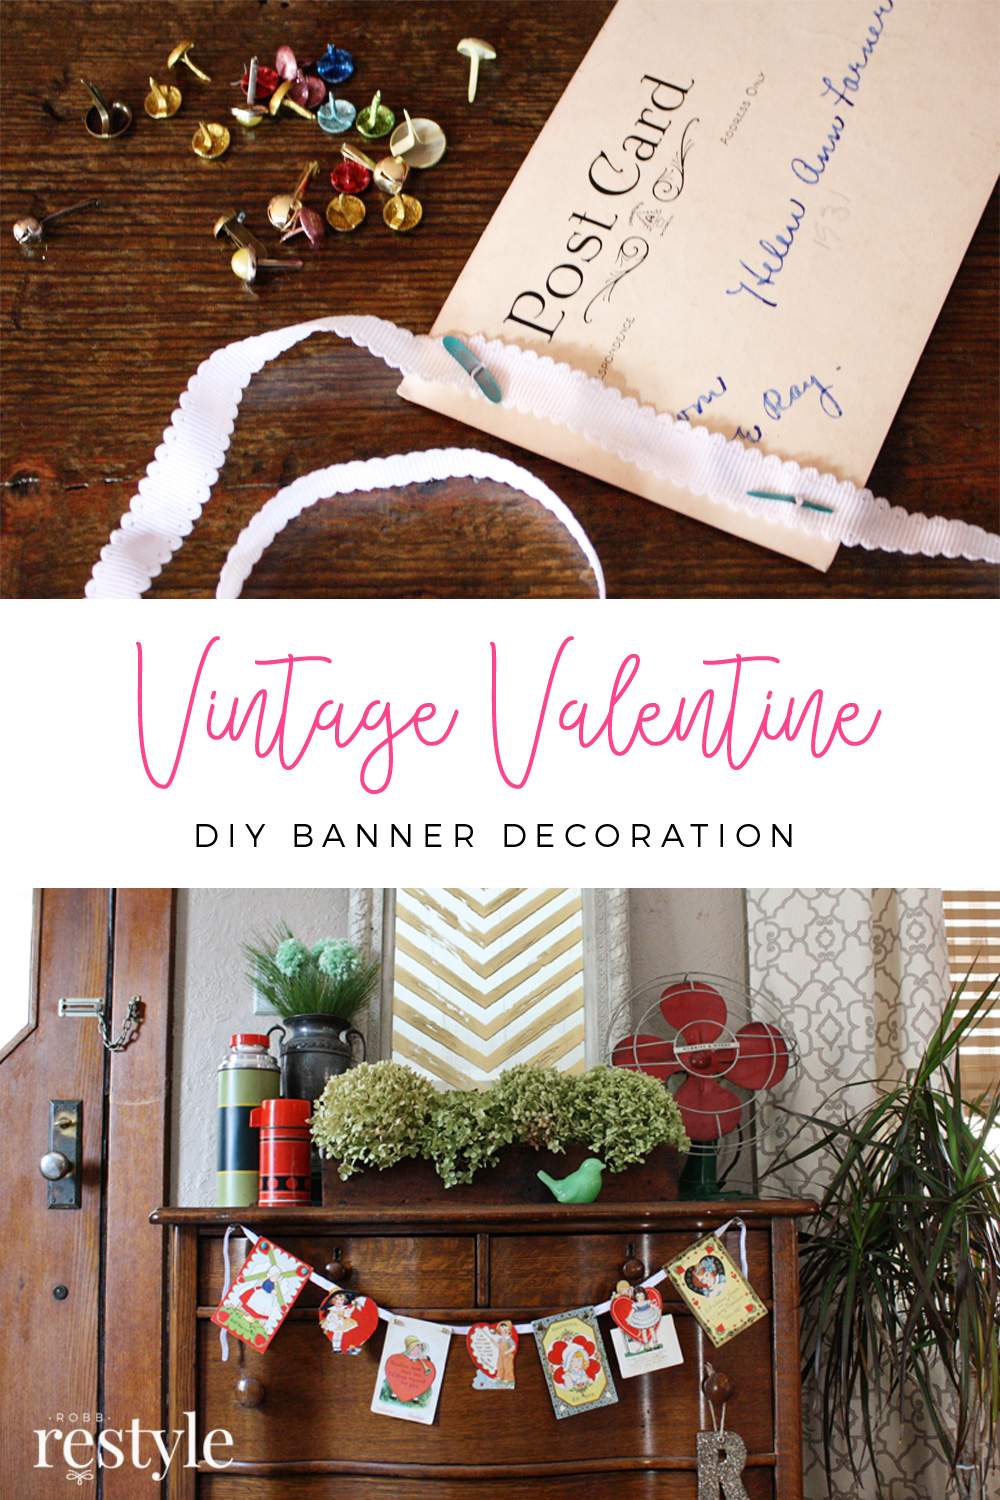 Vintage Valentine DIY Craft Banner Decoration Idea